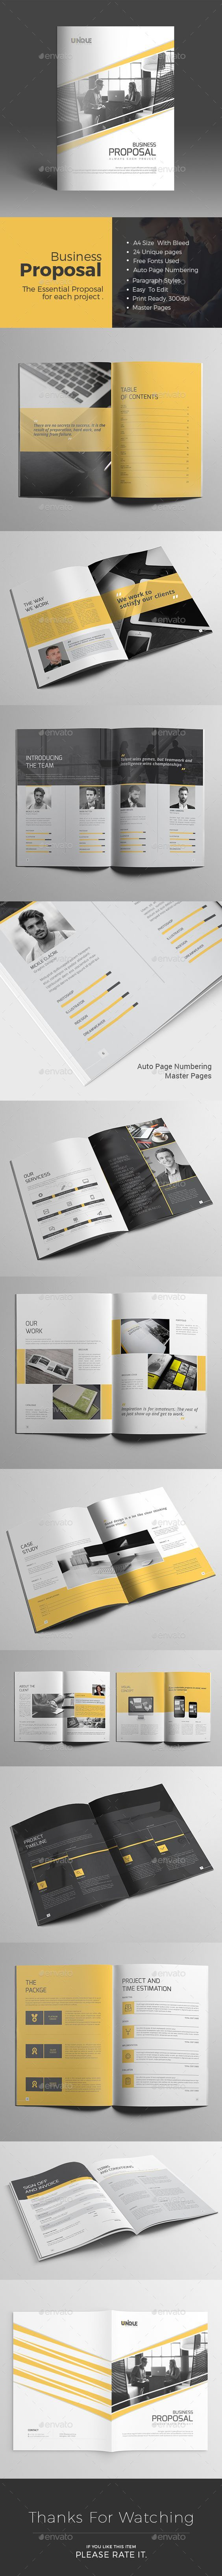 Business Proposal 24 Pages Template InDesign INDD #design Download: http://graphicriver.net/item/business-proposal/14278428?ref=ksioks: